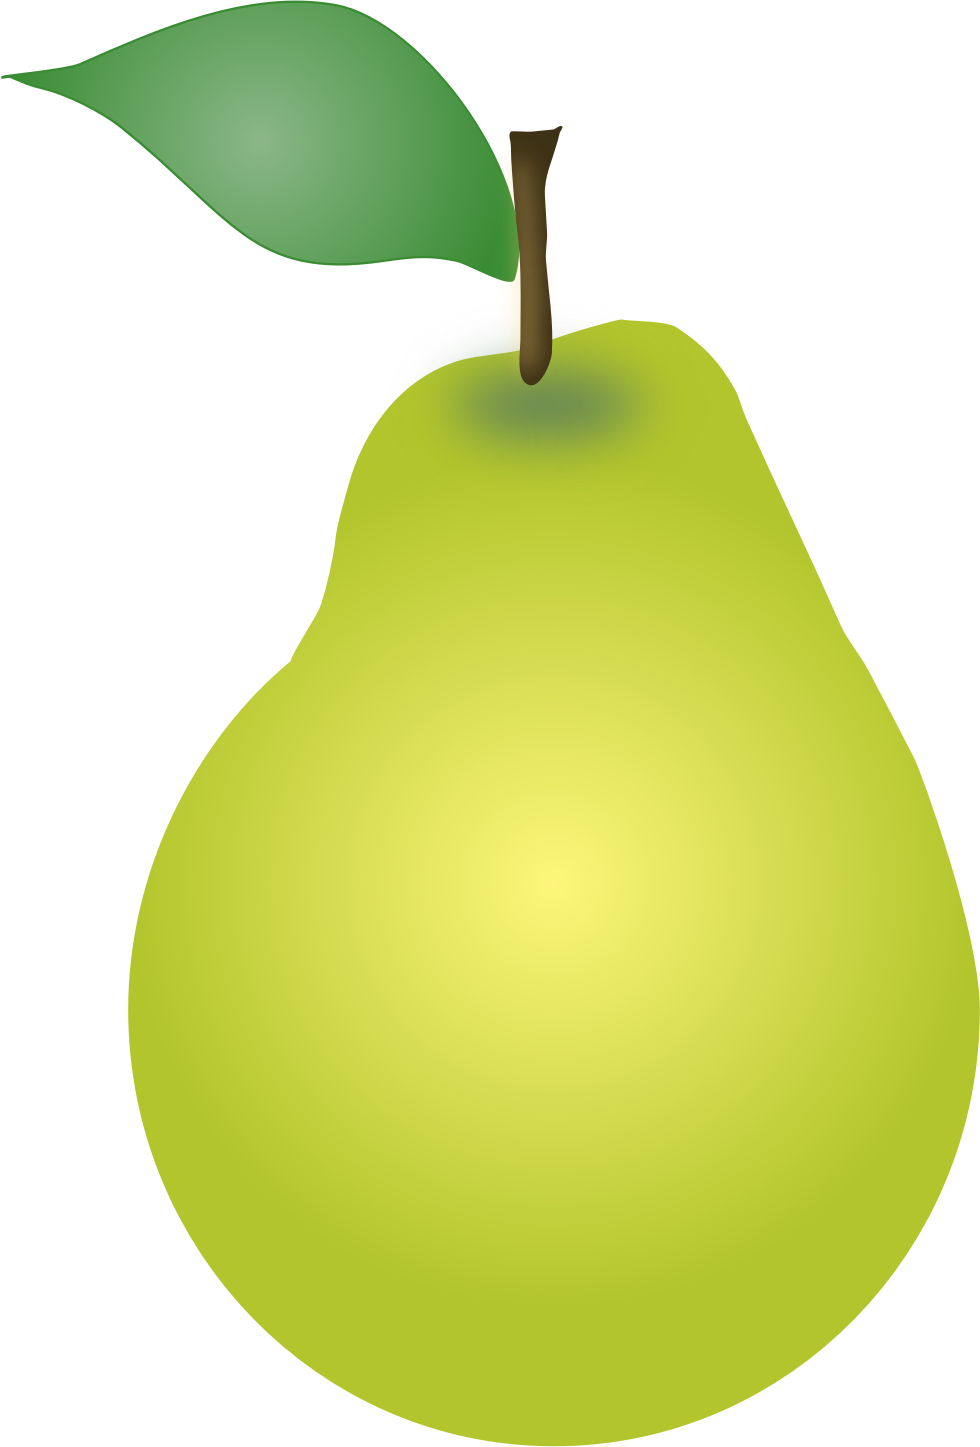 Svg big image png. Pear clipart